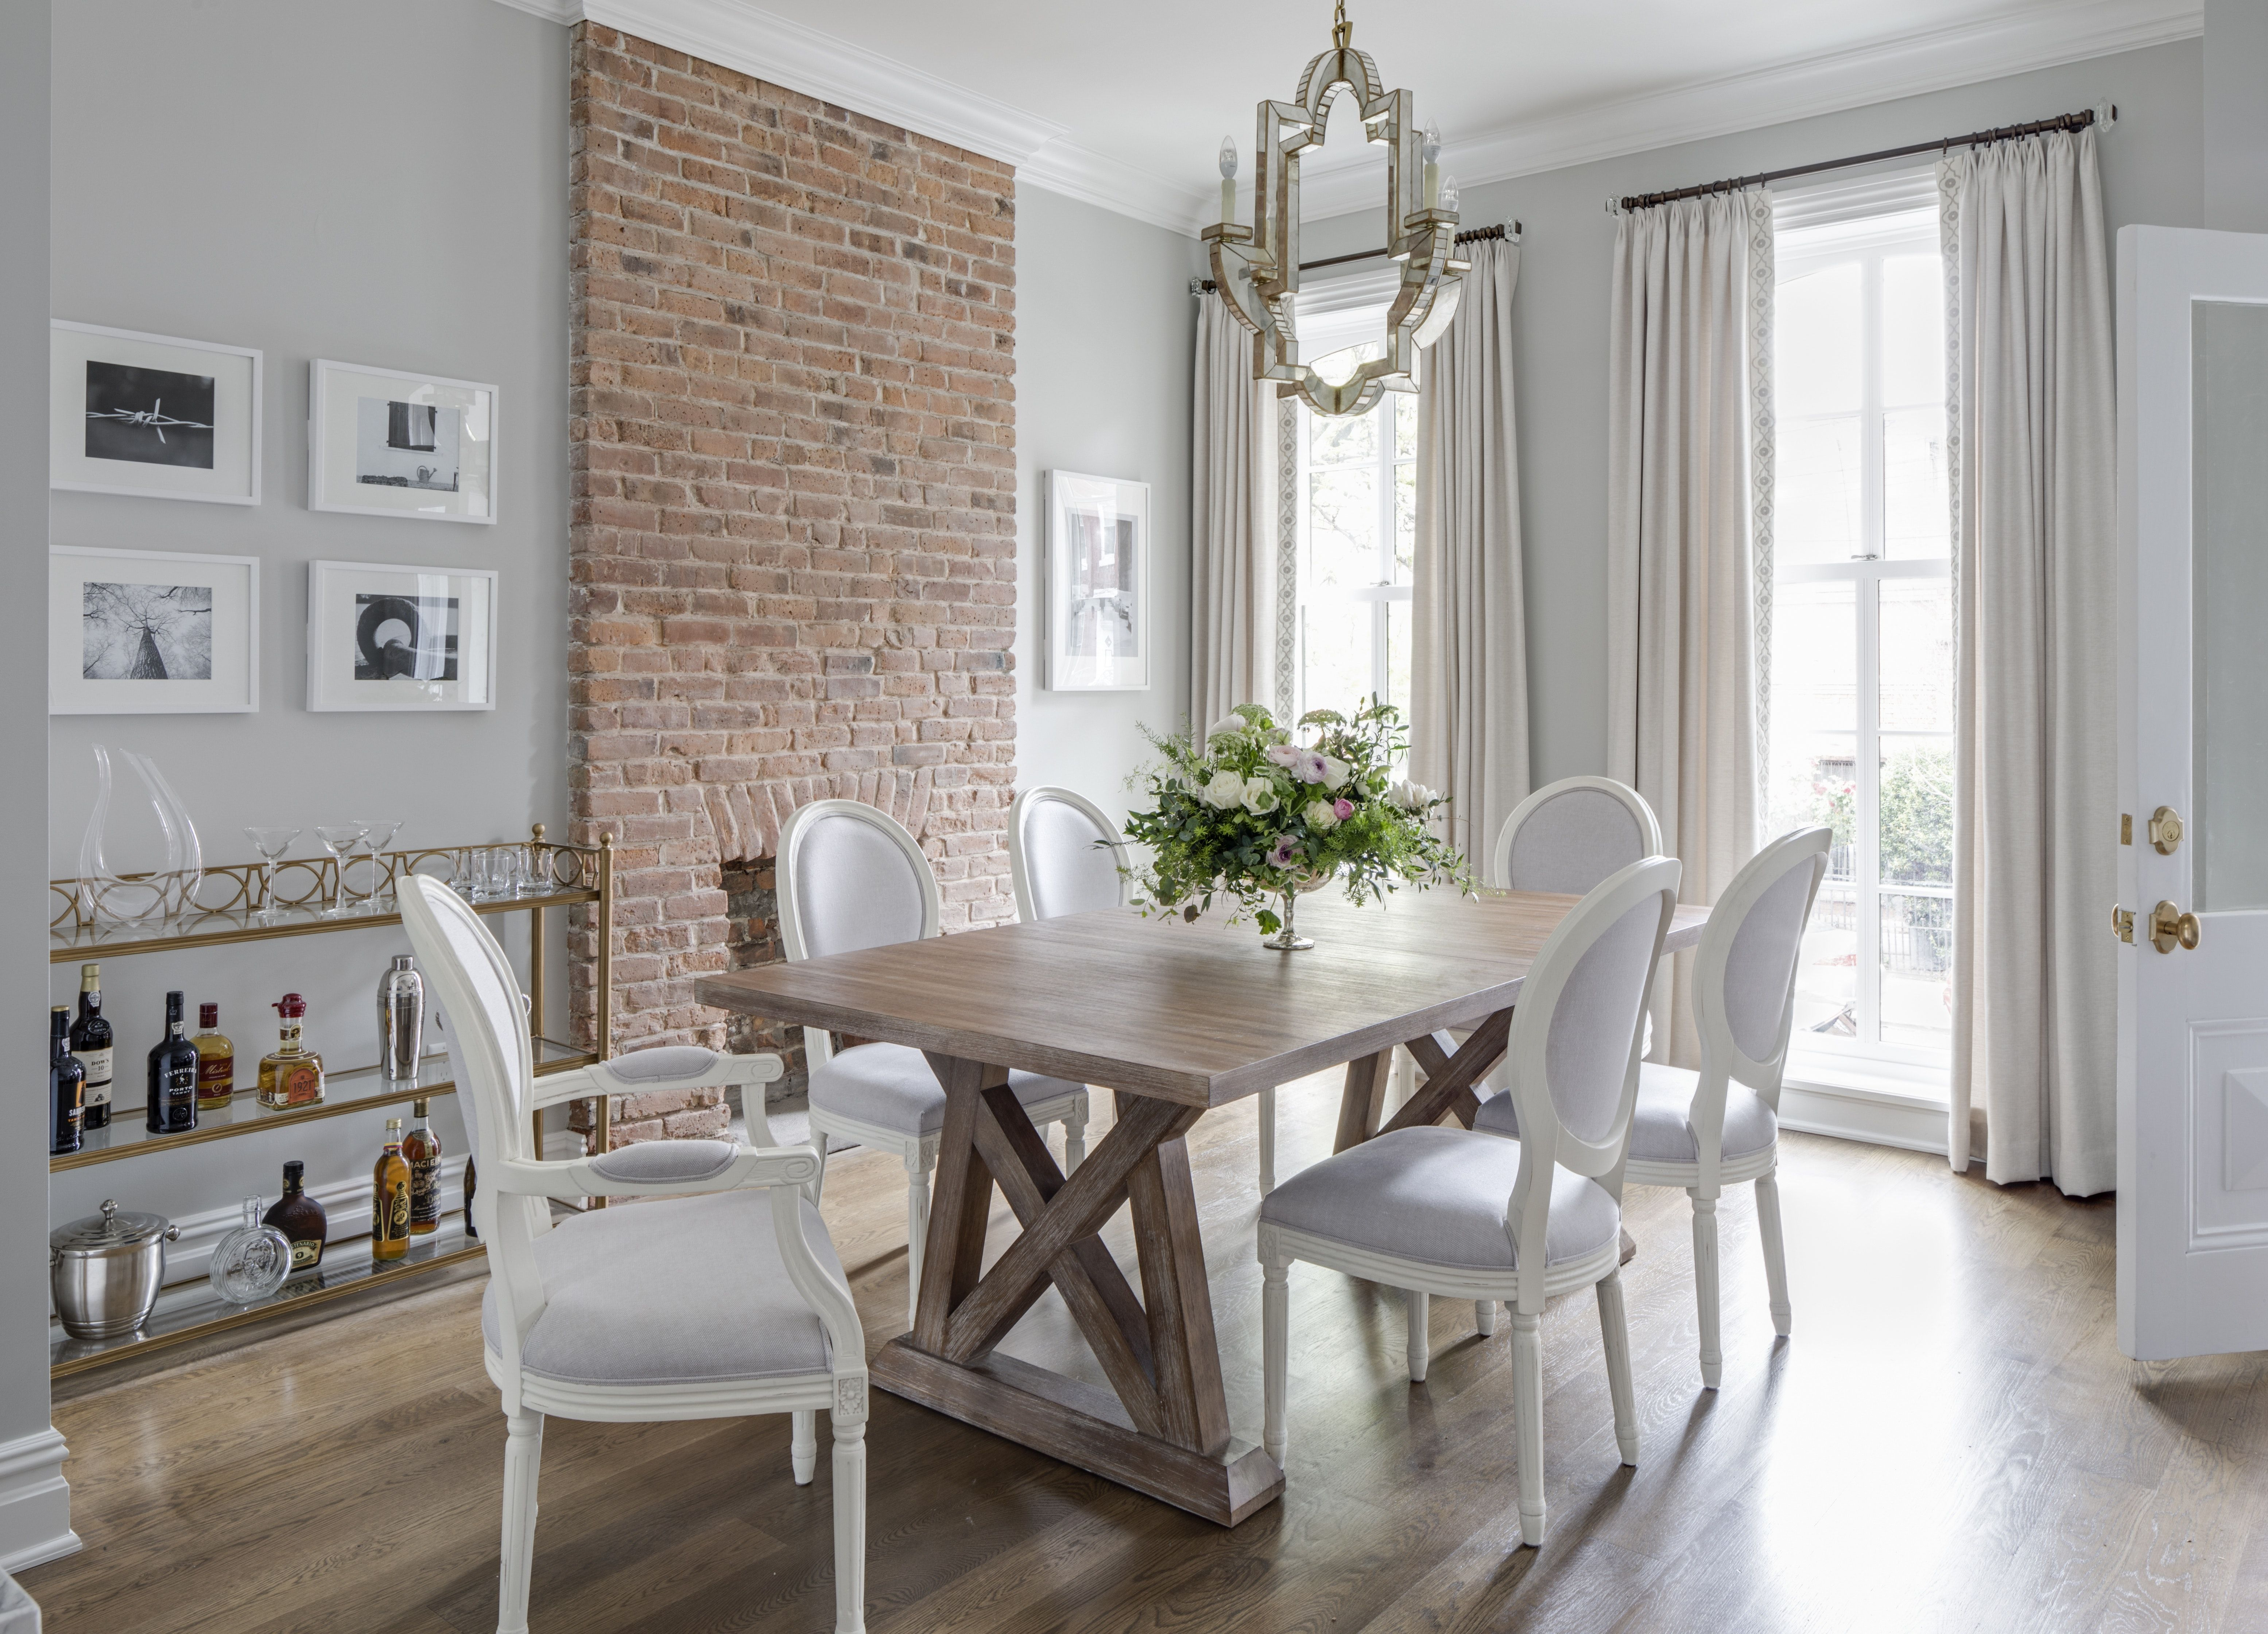 Jersey City Brownstone Dining Room With Floor To Ceiling Windows And Drapery By Jenny Madden Des Luxury Dining Room Cream Living Room Decor Dining Room Small